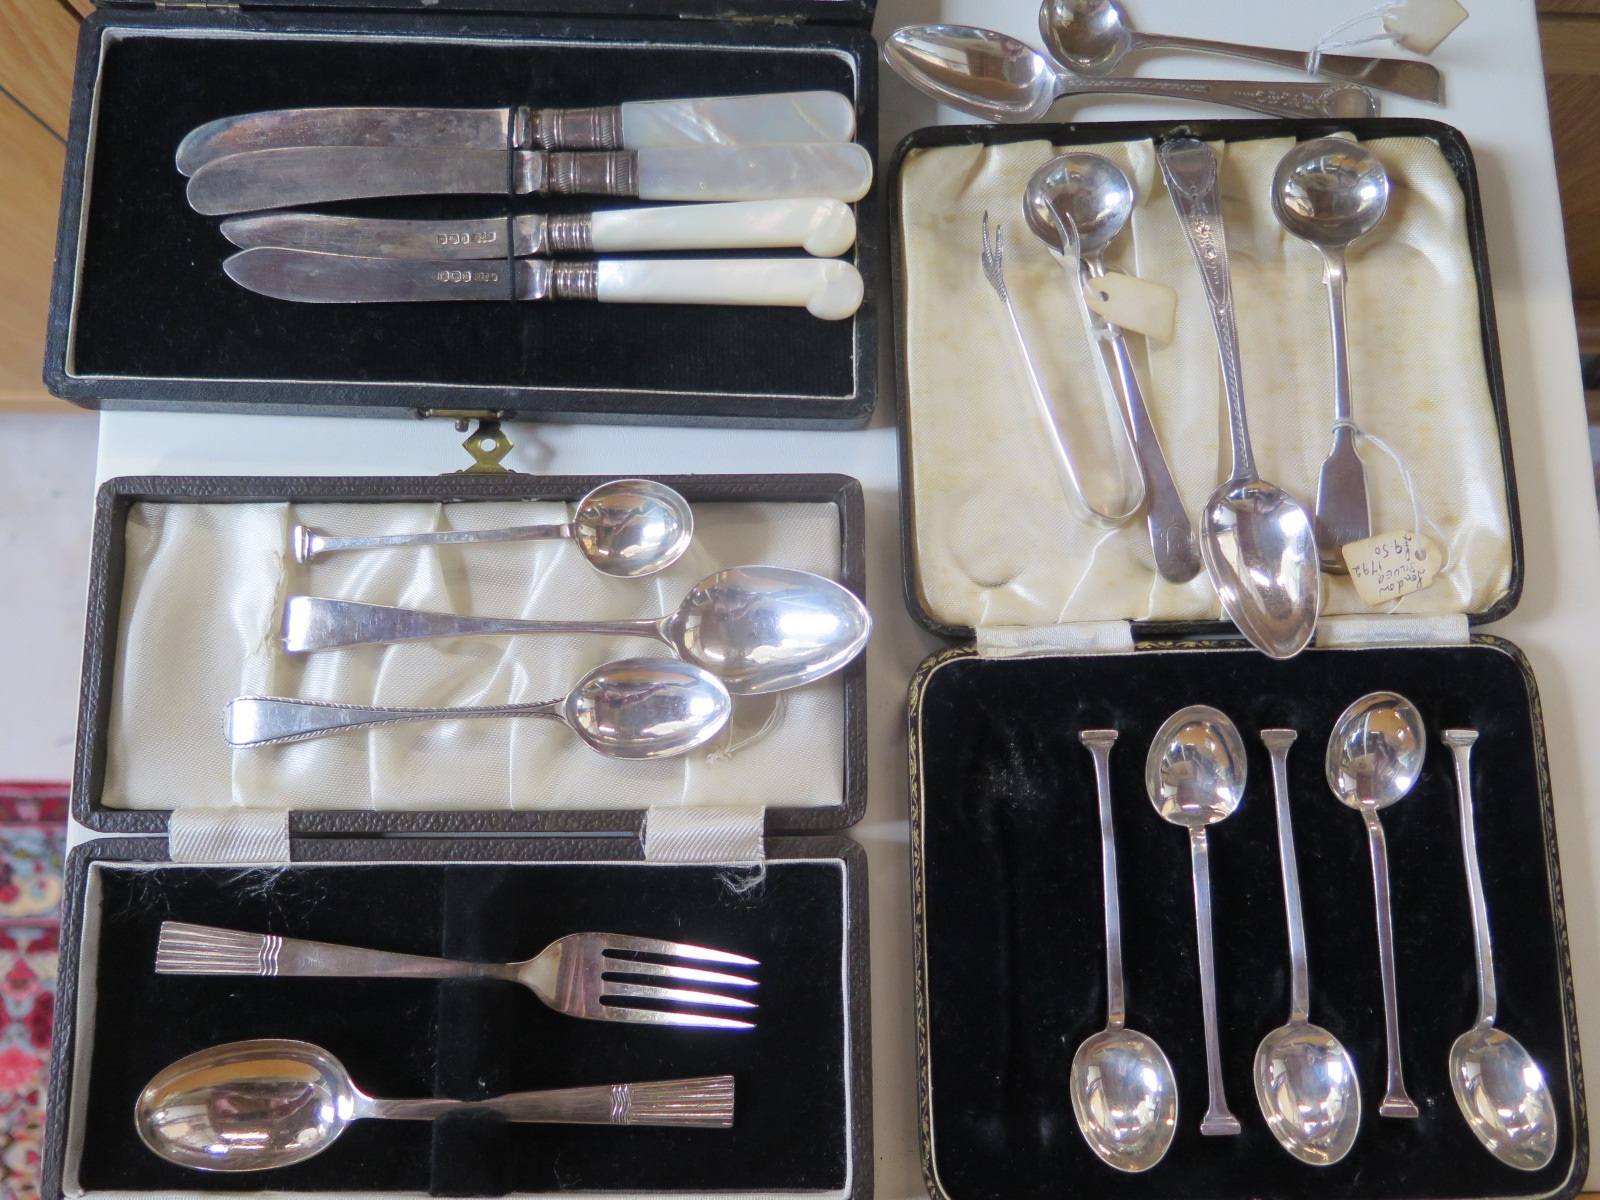 Lot 579 - Eight pieces of silver flatware, and a cased set of six spoons, knife and fork and two silver bladed